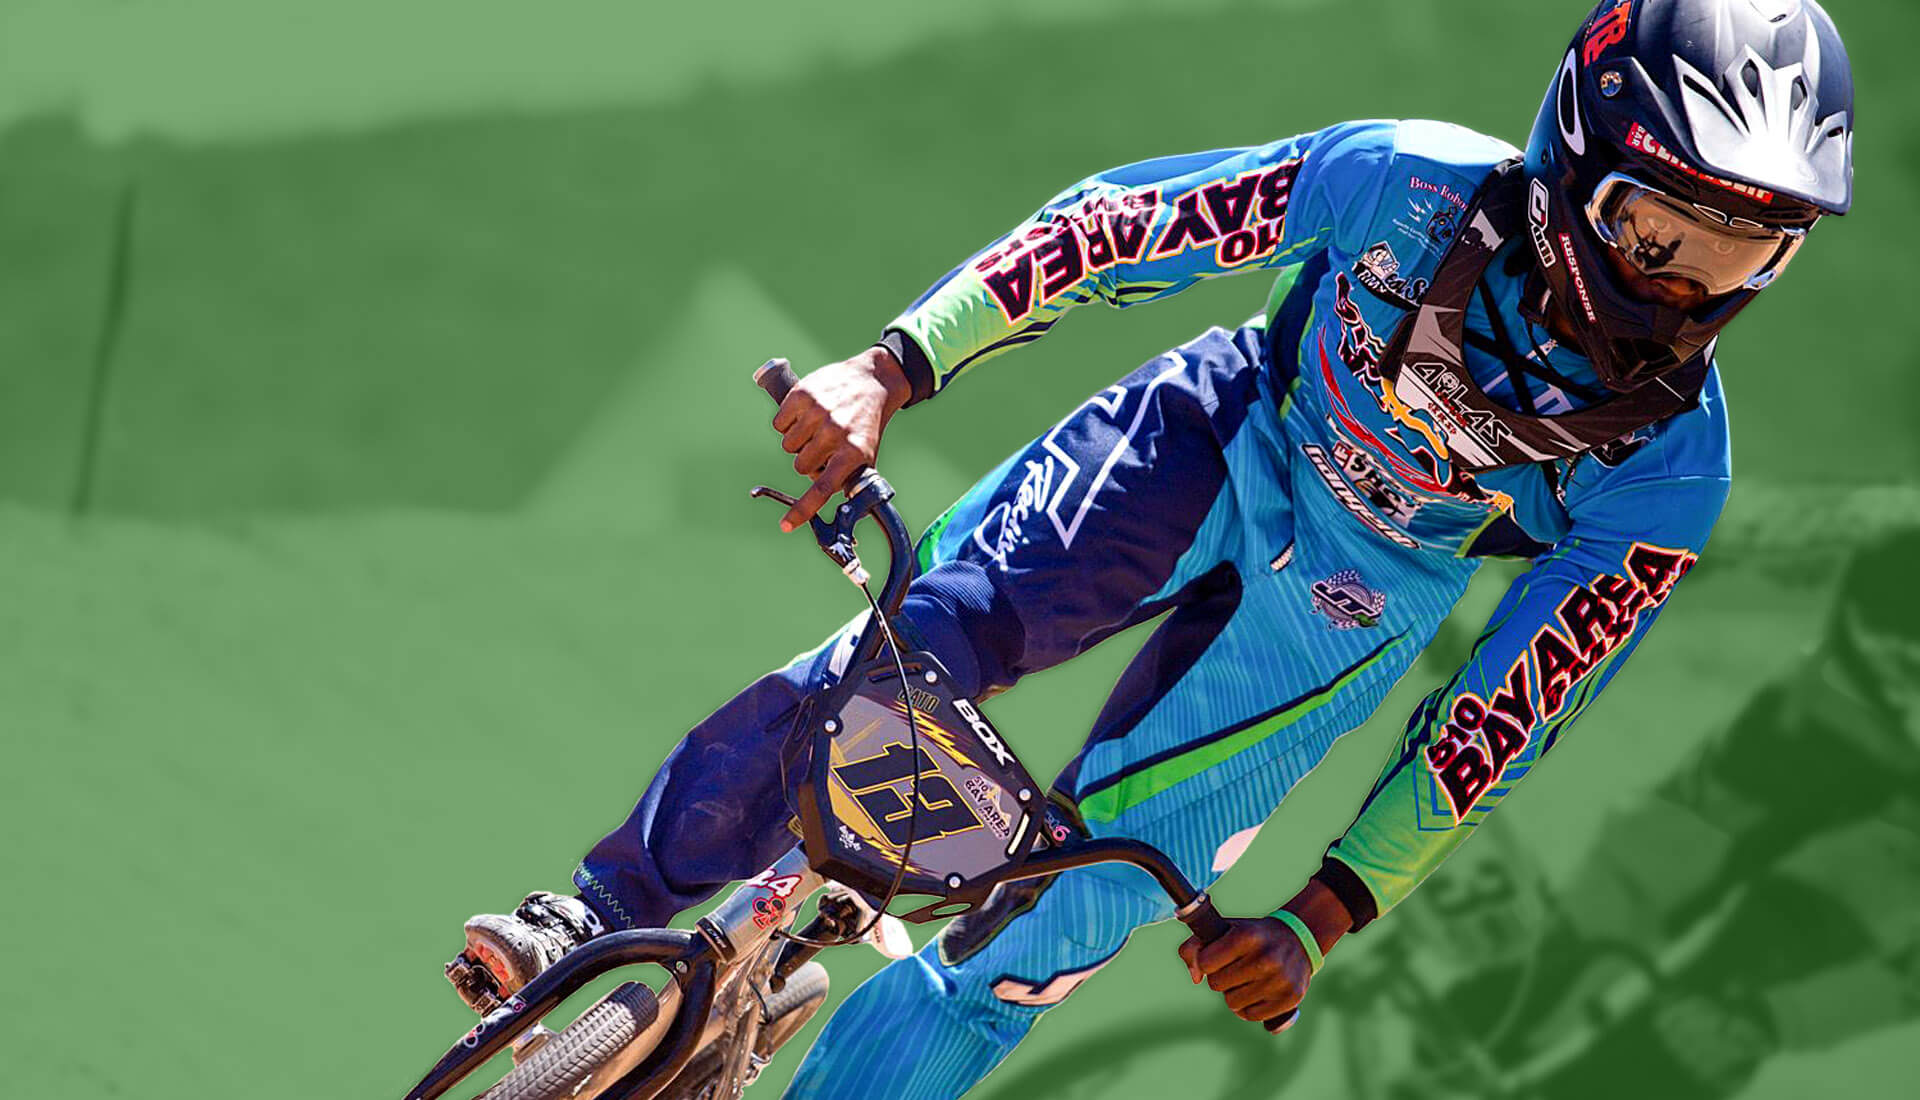 bay area bmxers banner